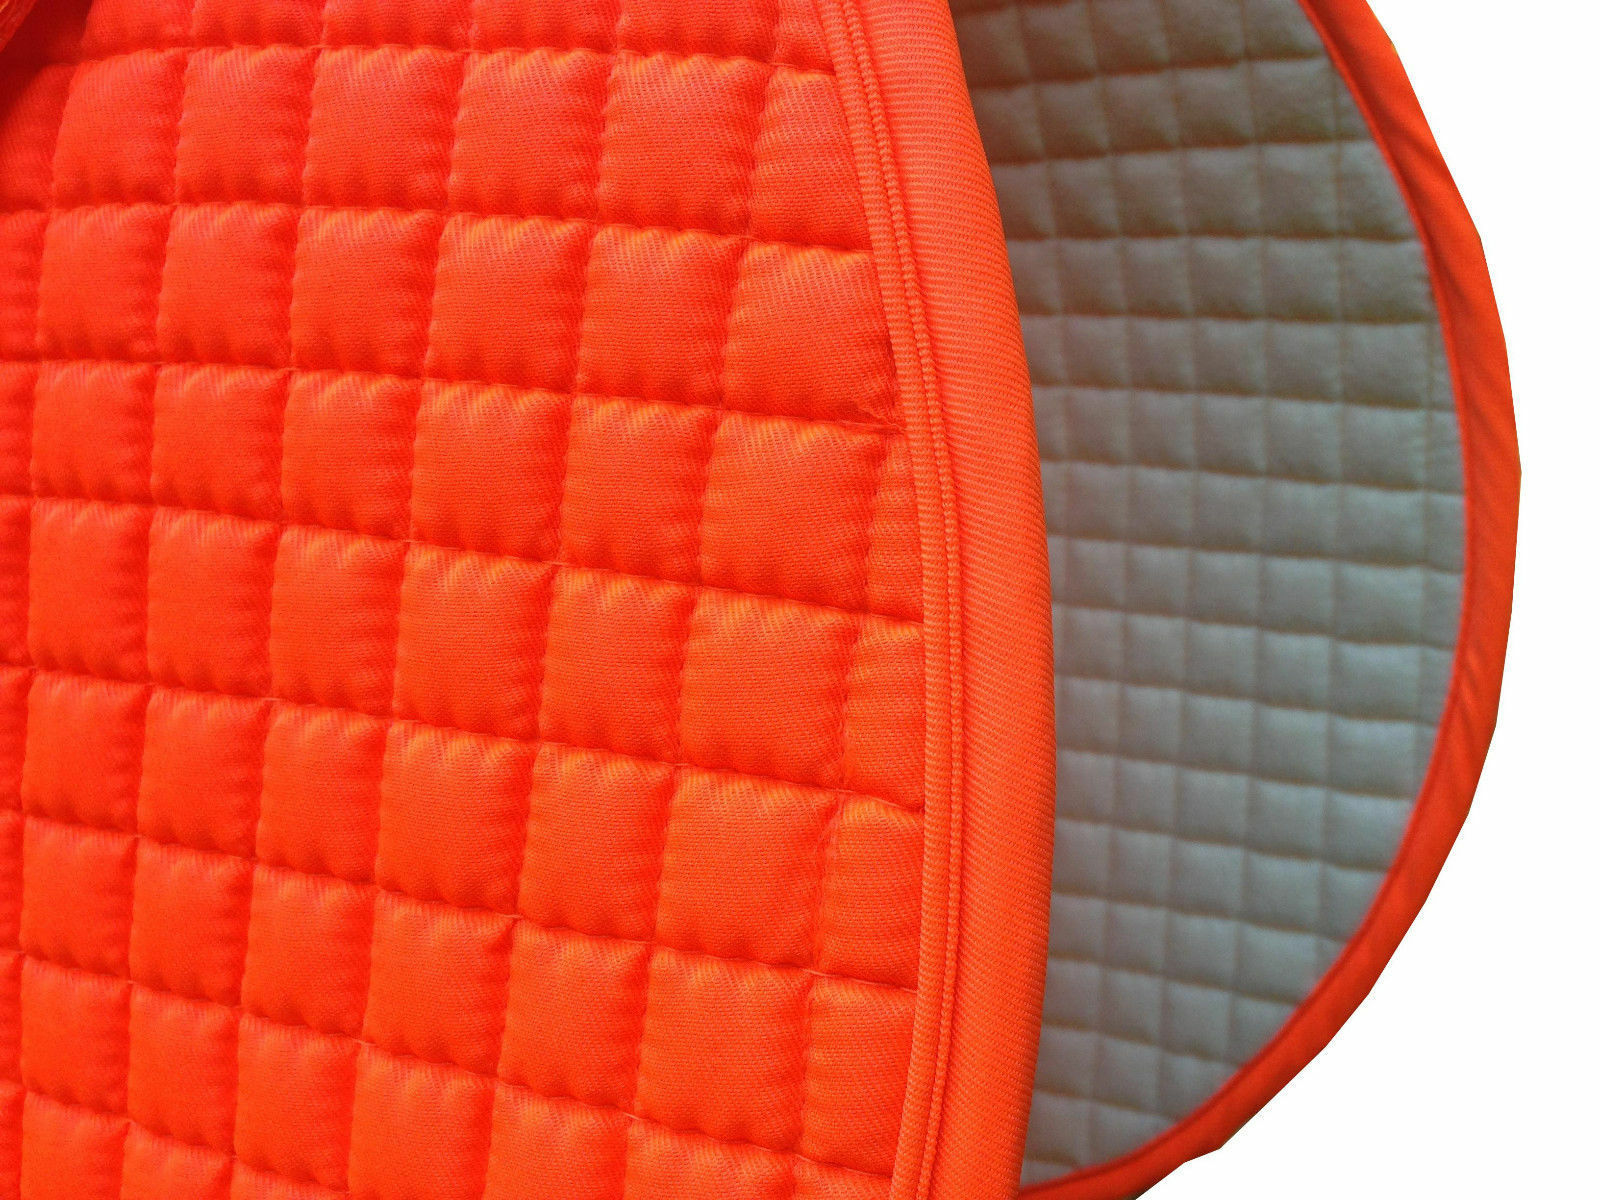 Hunter Safety Neon Blaze orange English Saddle Pads - Dressage or All-Purpose